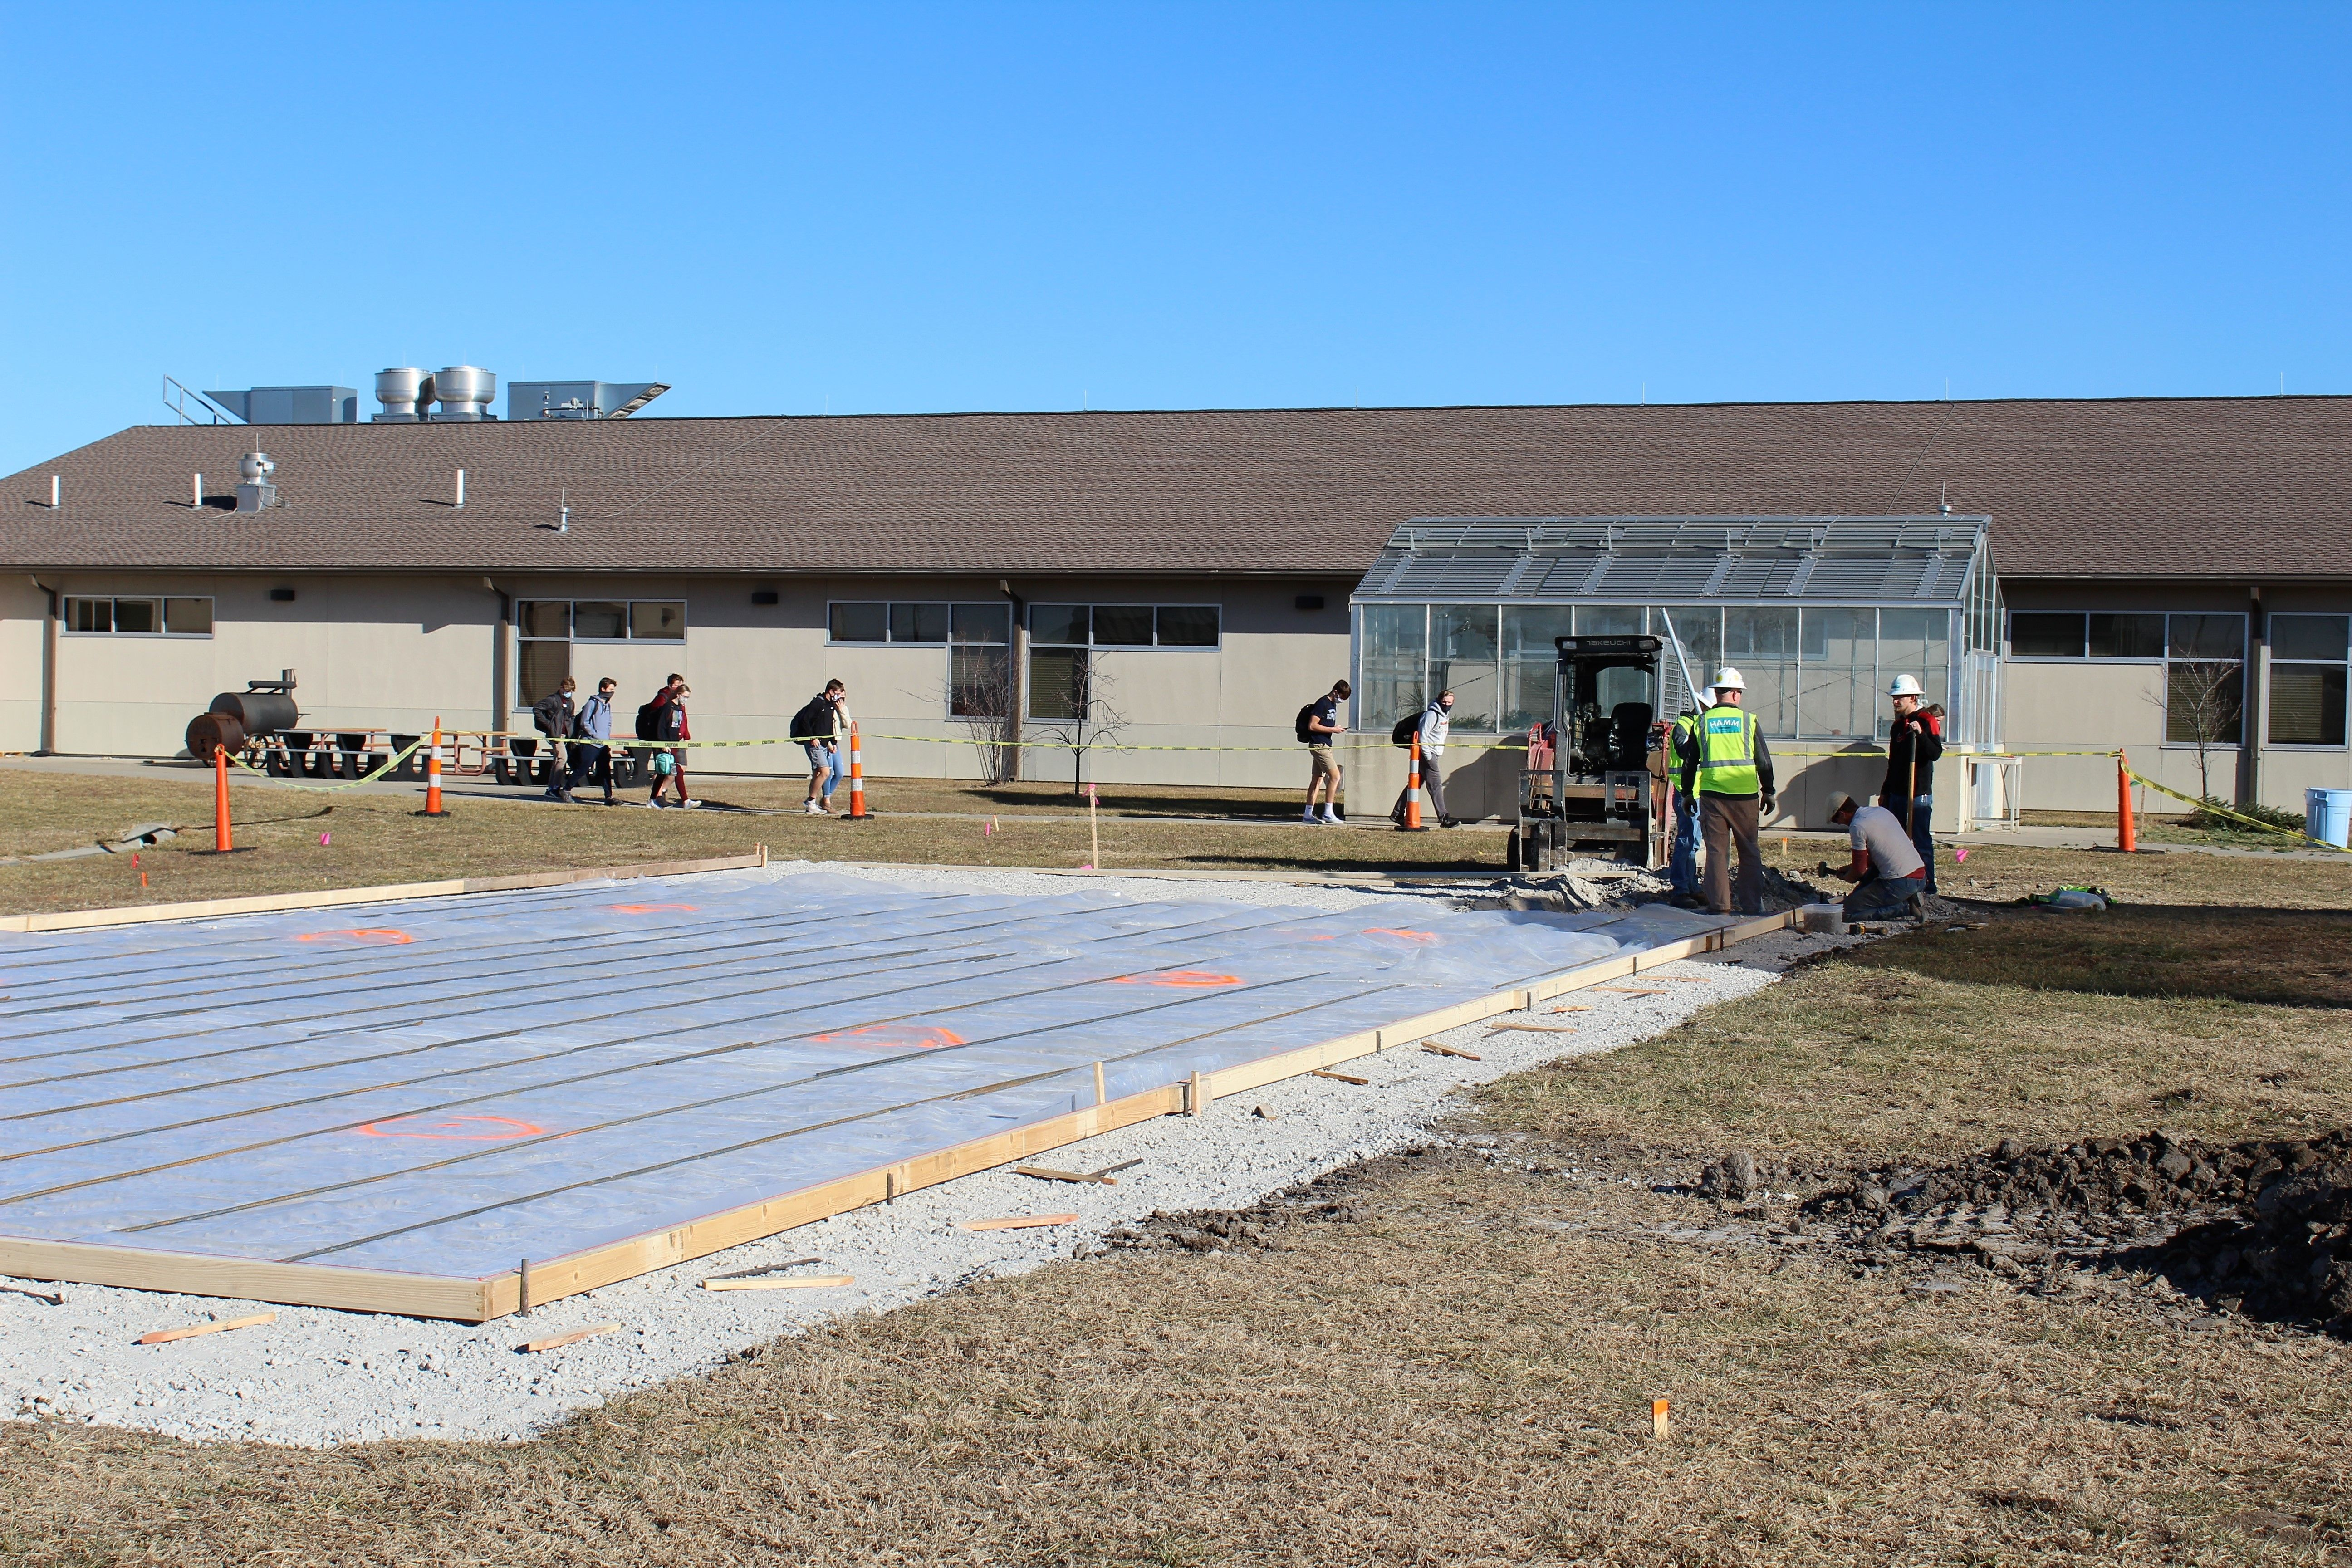 Eudora Schools Foundation receives $10,000 grant from LiveWell Douglas County to build an Outdoor Learning and Culinary Center at Eudora High School